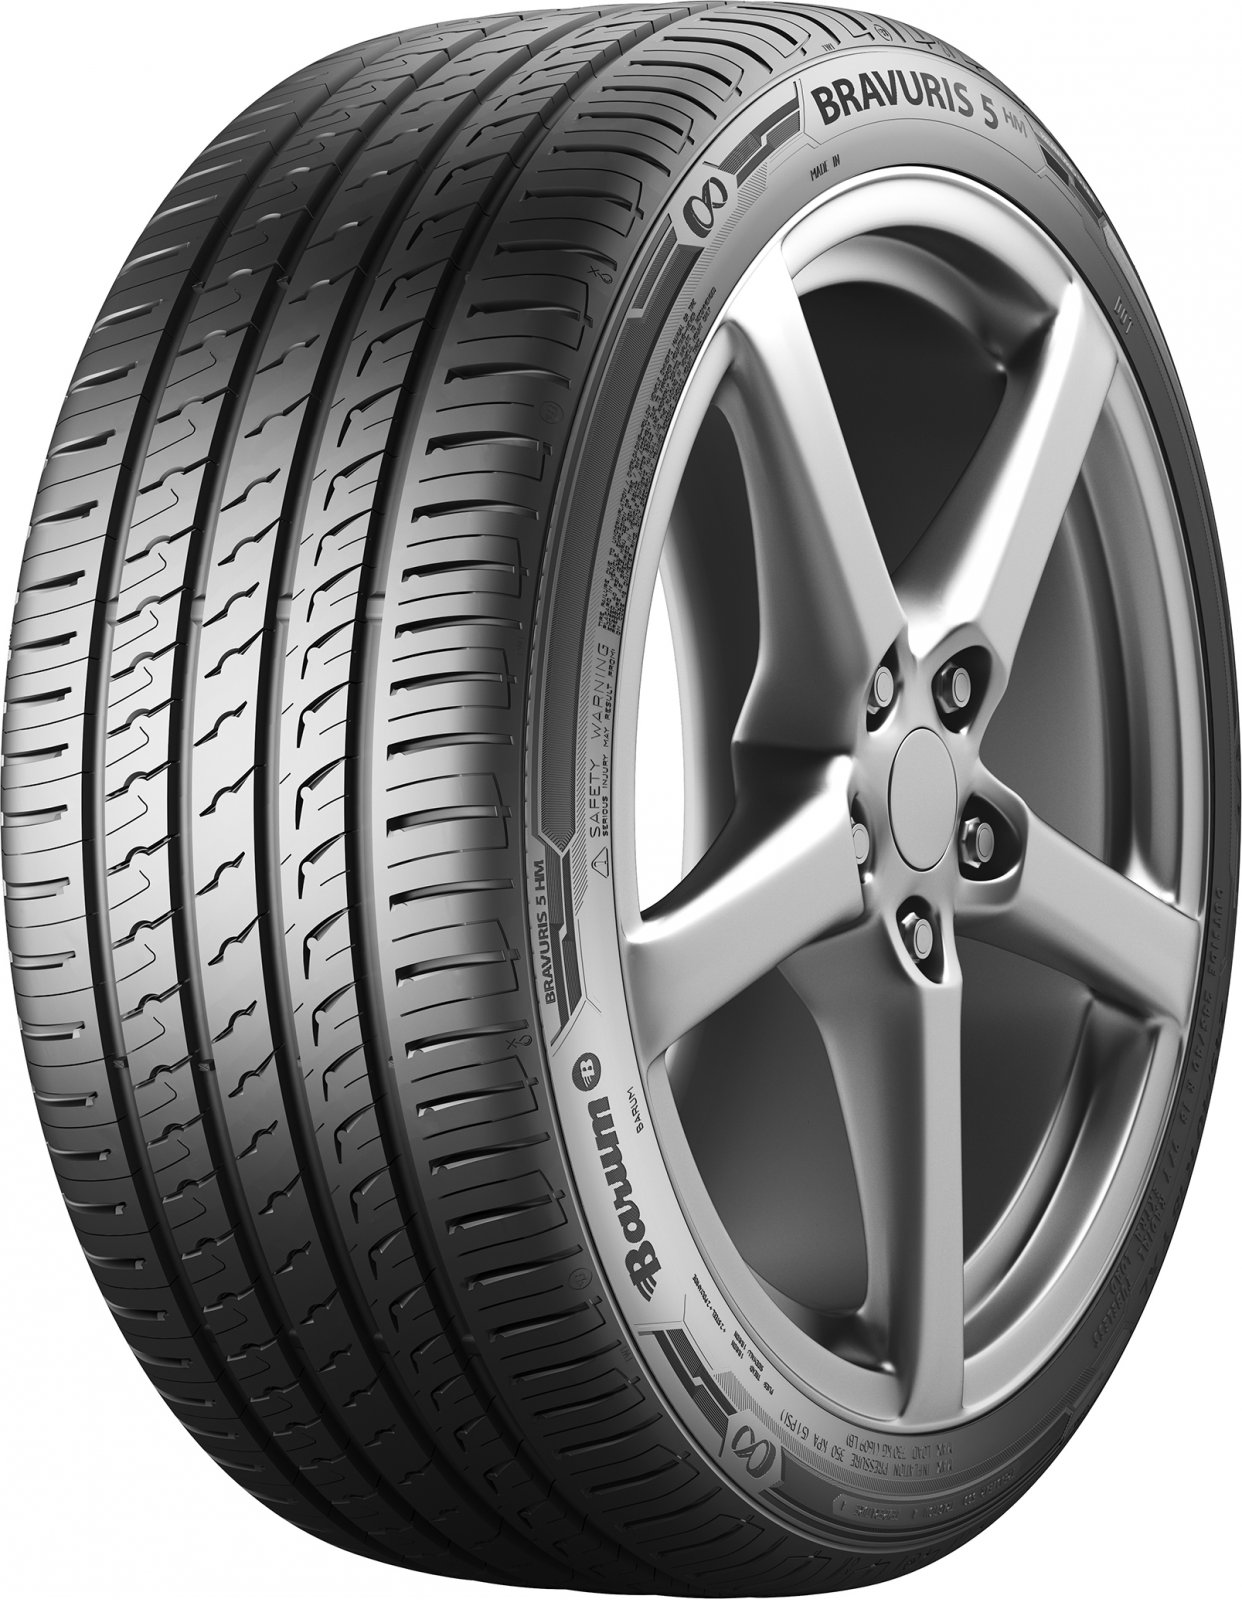 Barum 165/70 R14 Bravuris 5HM 81T